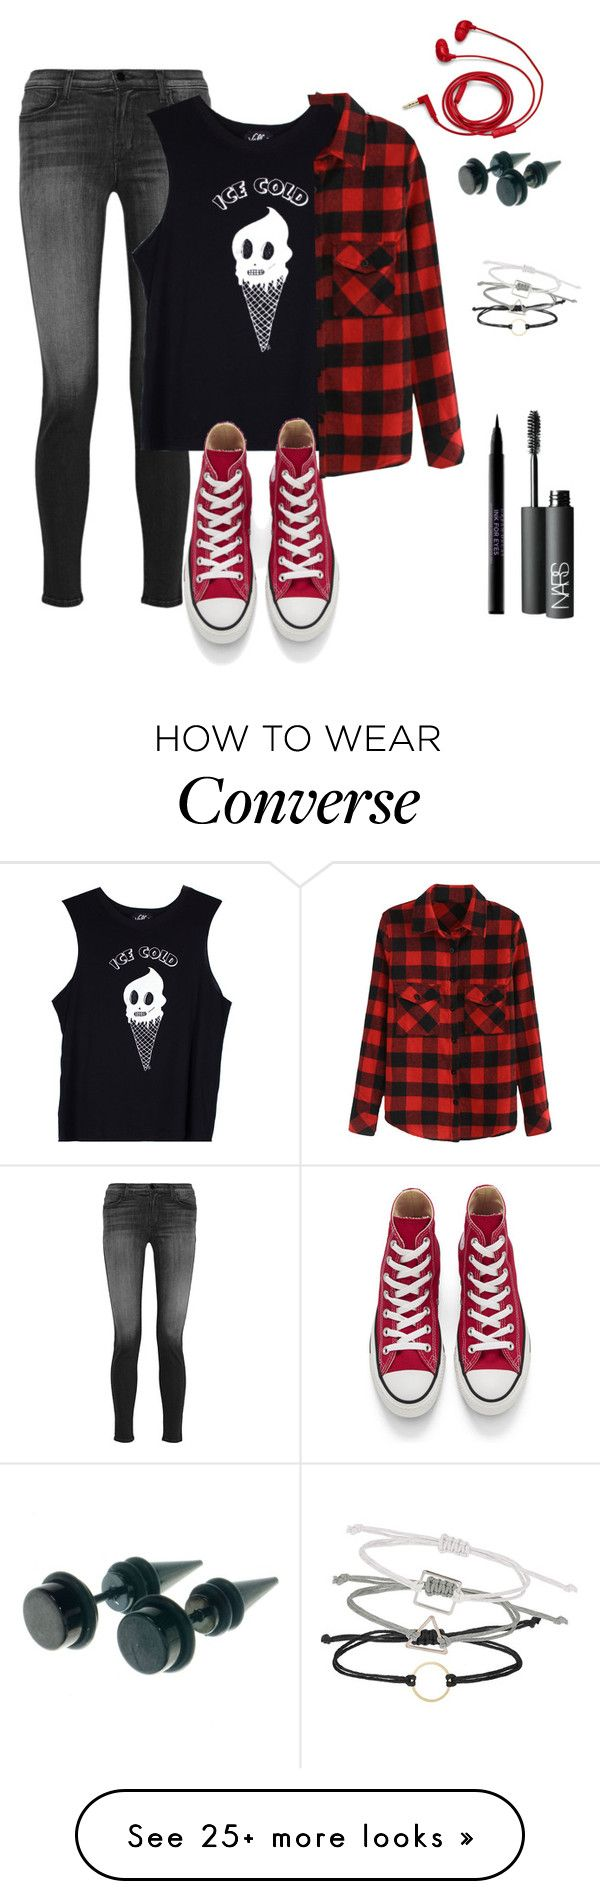 """""""Untitled #64"""" by fabulousarcher on Polyvore featuring J Brand, Valfré, Converse, Urban Decay, NARS Cosmetics, Topshop and FOSSIL"""